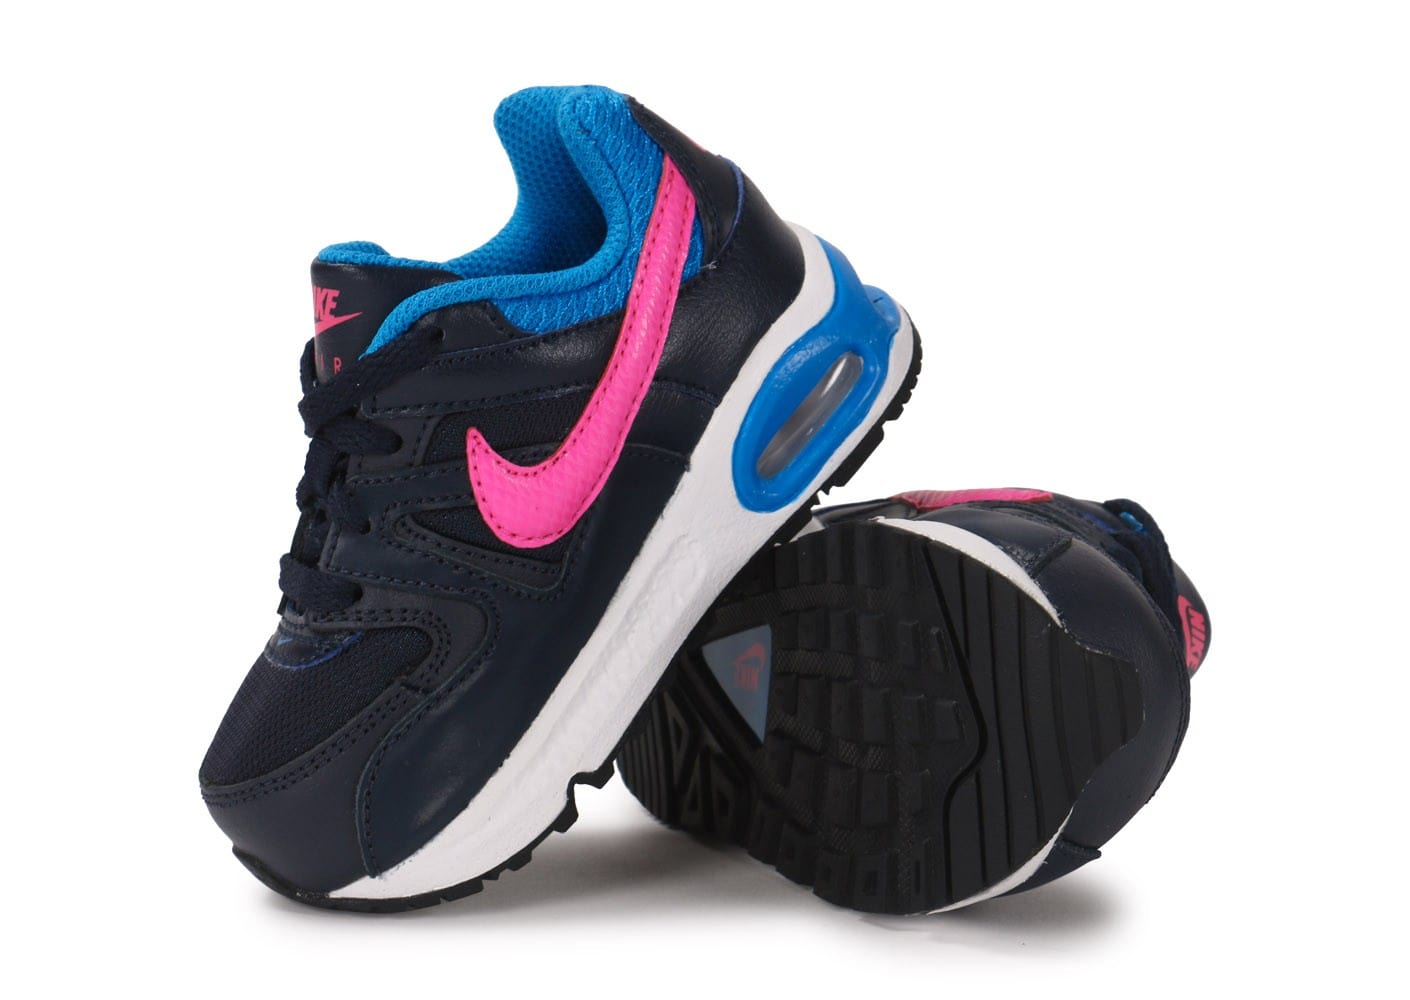 Noir Chausport Nike Chaussures Command Bébé Air Max Rose 9IHEDW2eY